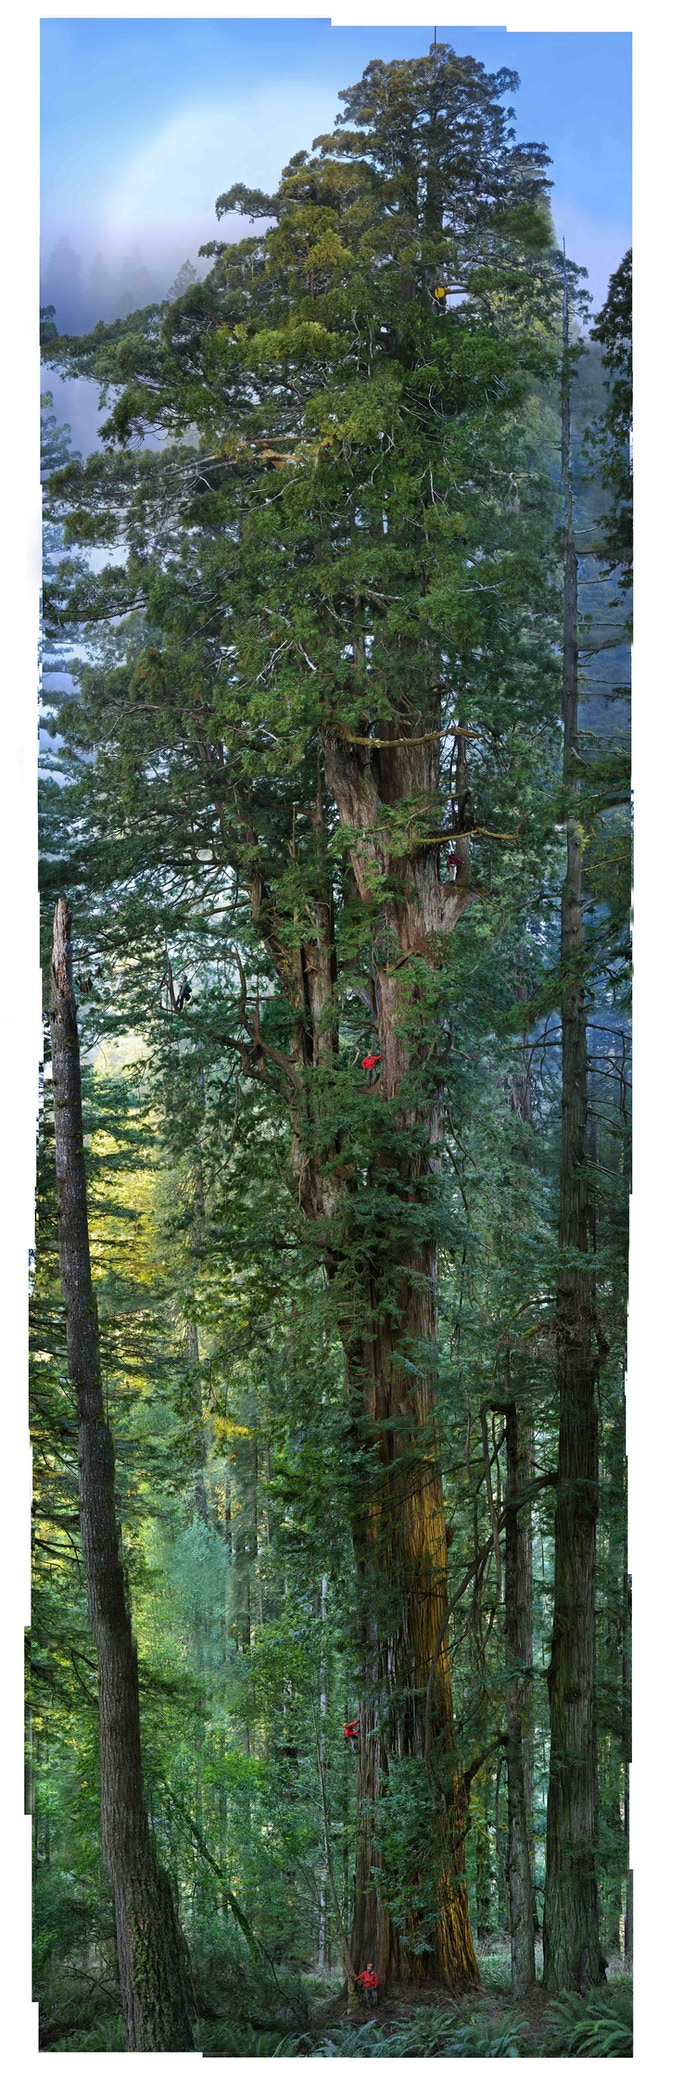 Scientists estimate that this tree is at least 1500 years old. This is the first seamless photograph of an entire Californian redwood tree. © Michael Nichols / National Geographic